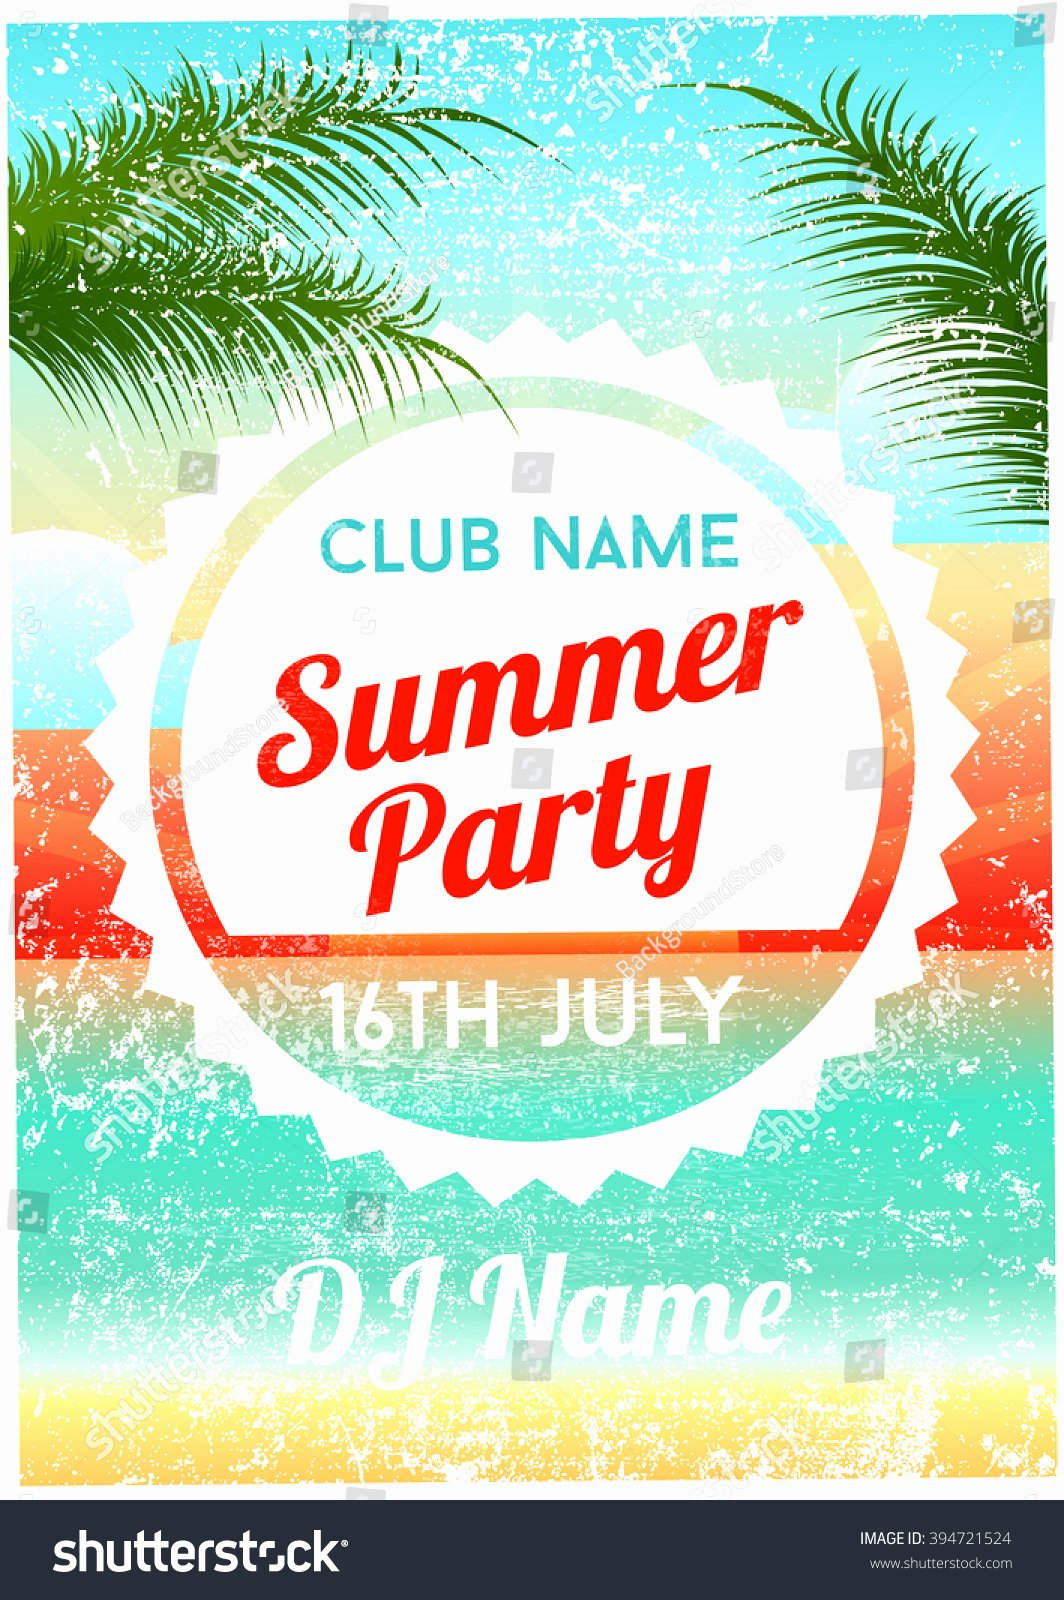 Summer Party Flyer Template Beautiful Summer Party Poster Flyer Template Stock Vector